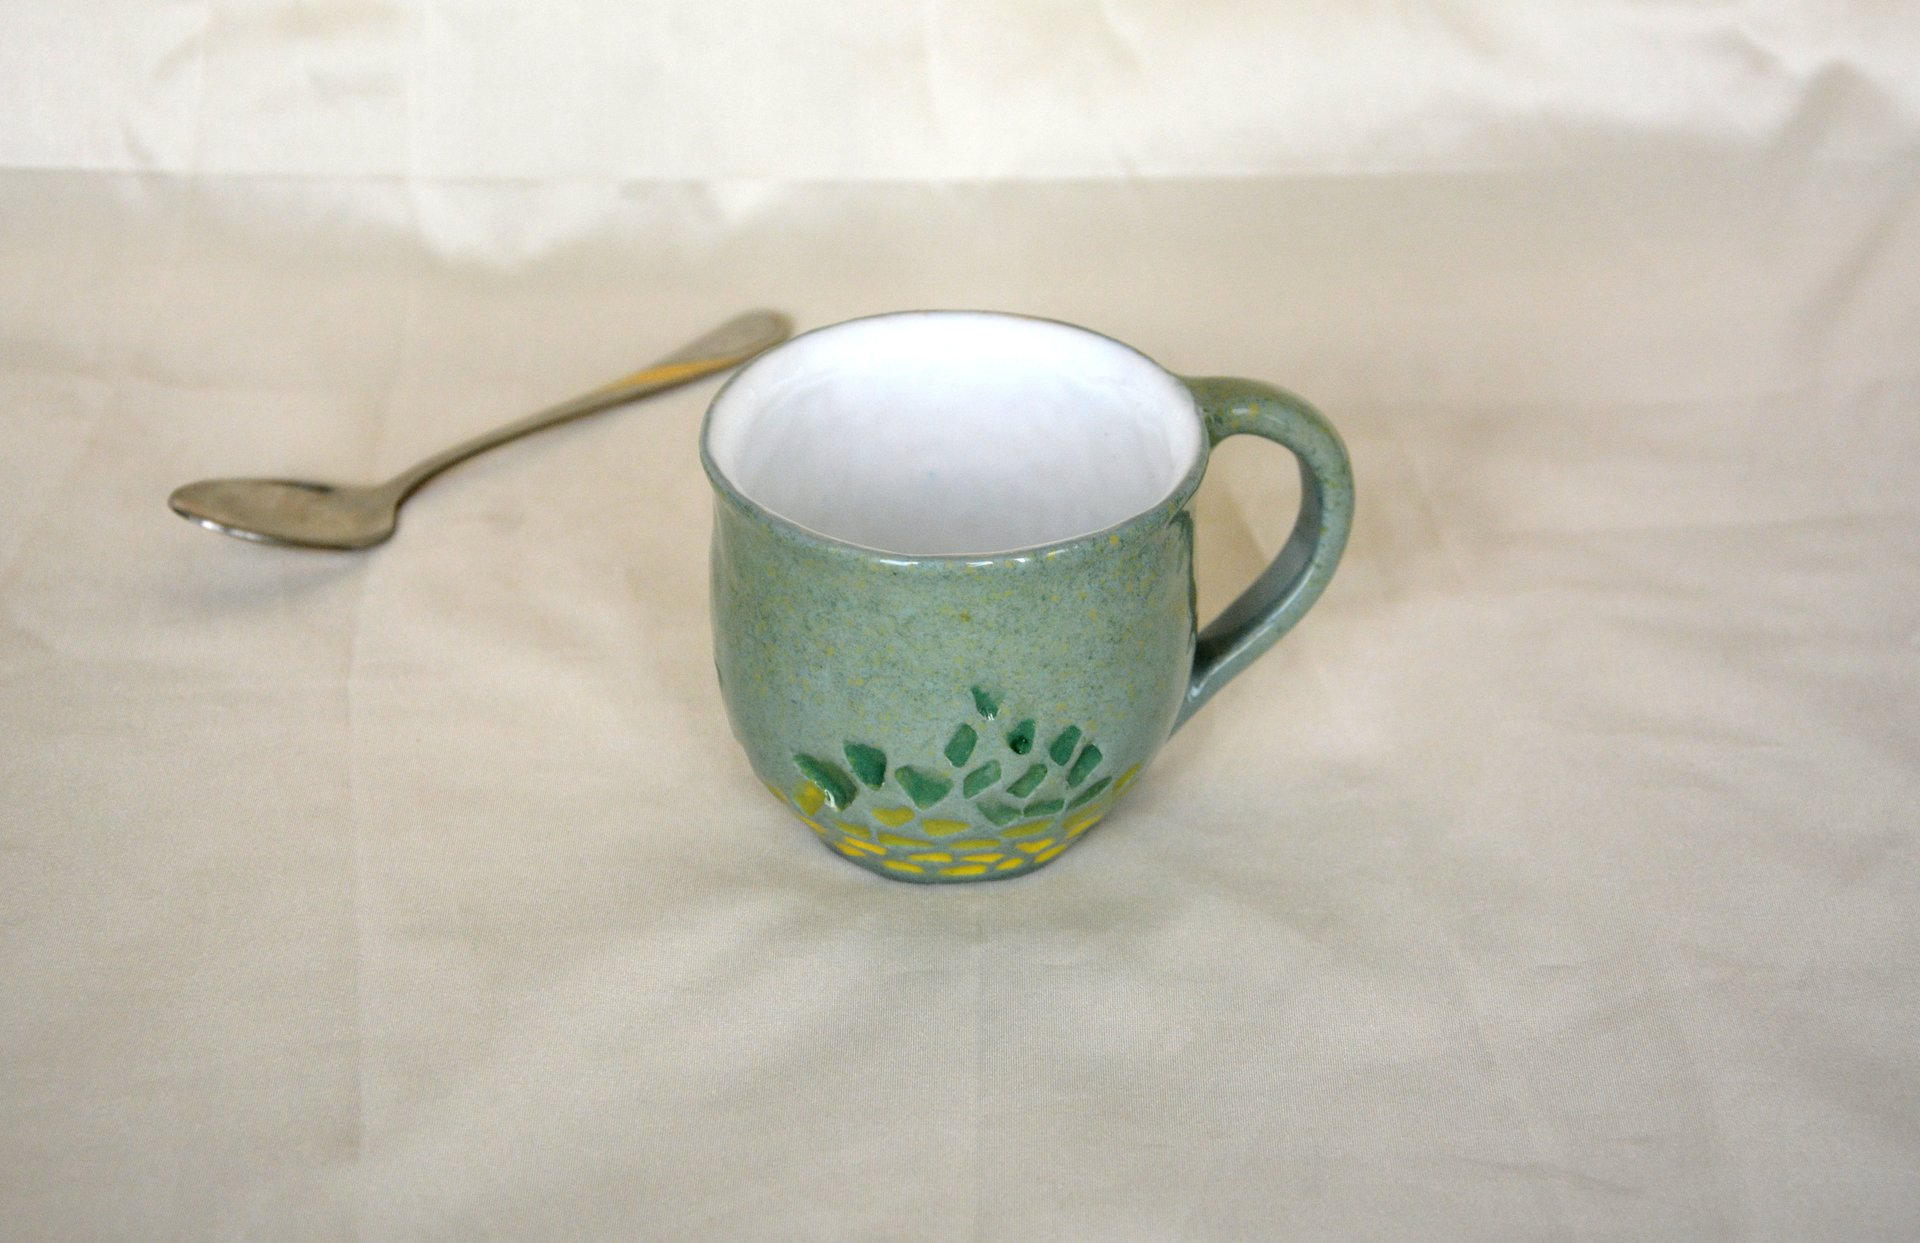 Gray cup for tea or coffee, height - 7 cm, volume - 220 ml, photo 6 of 8.